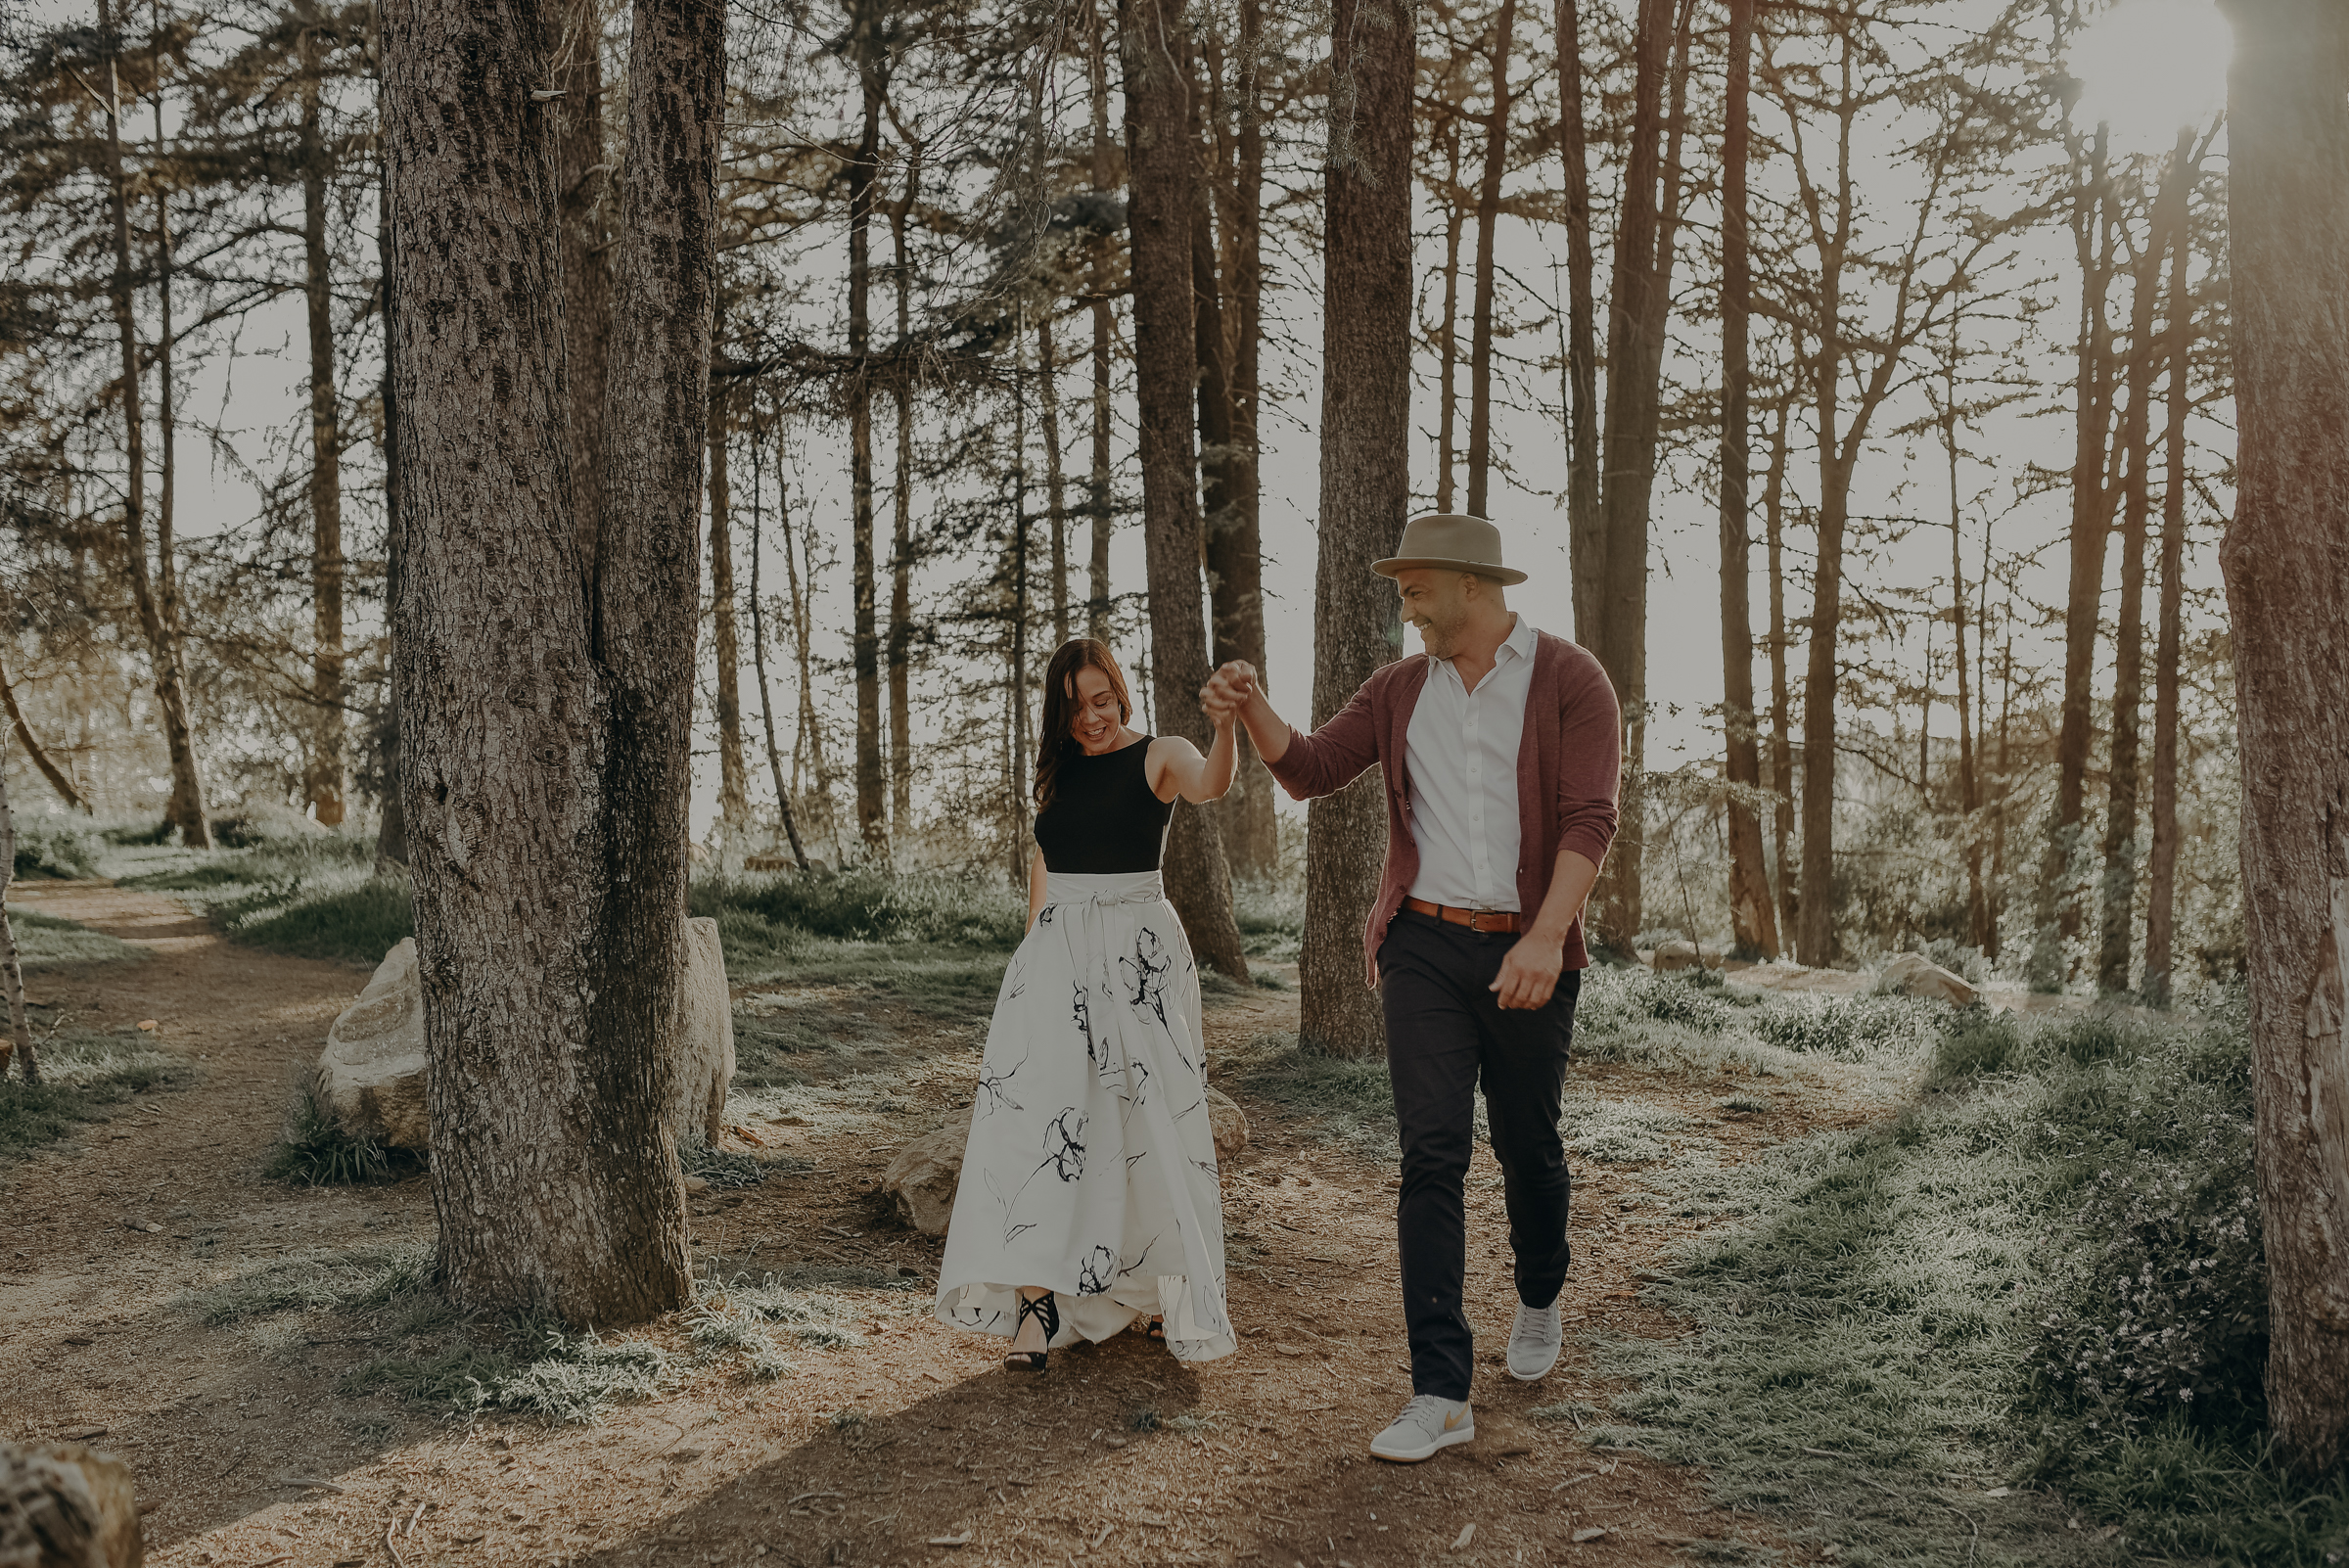 Los Angeles Wedding Photographers - Griffith Park Engagement - IsaiahAndTaylor.com-009.jpg